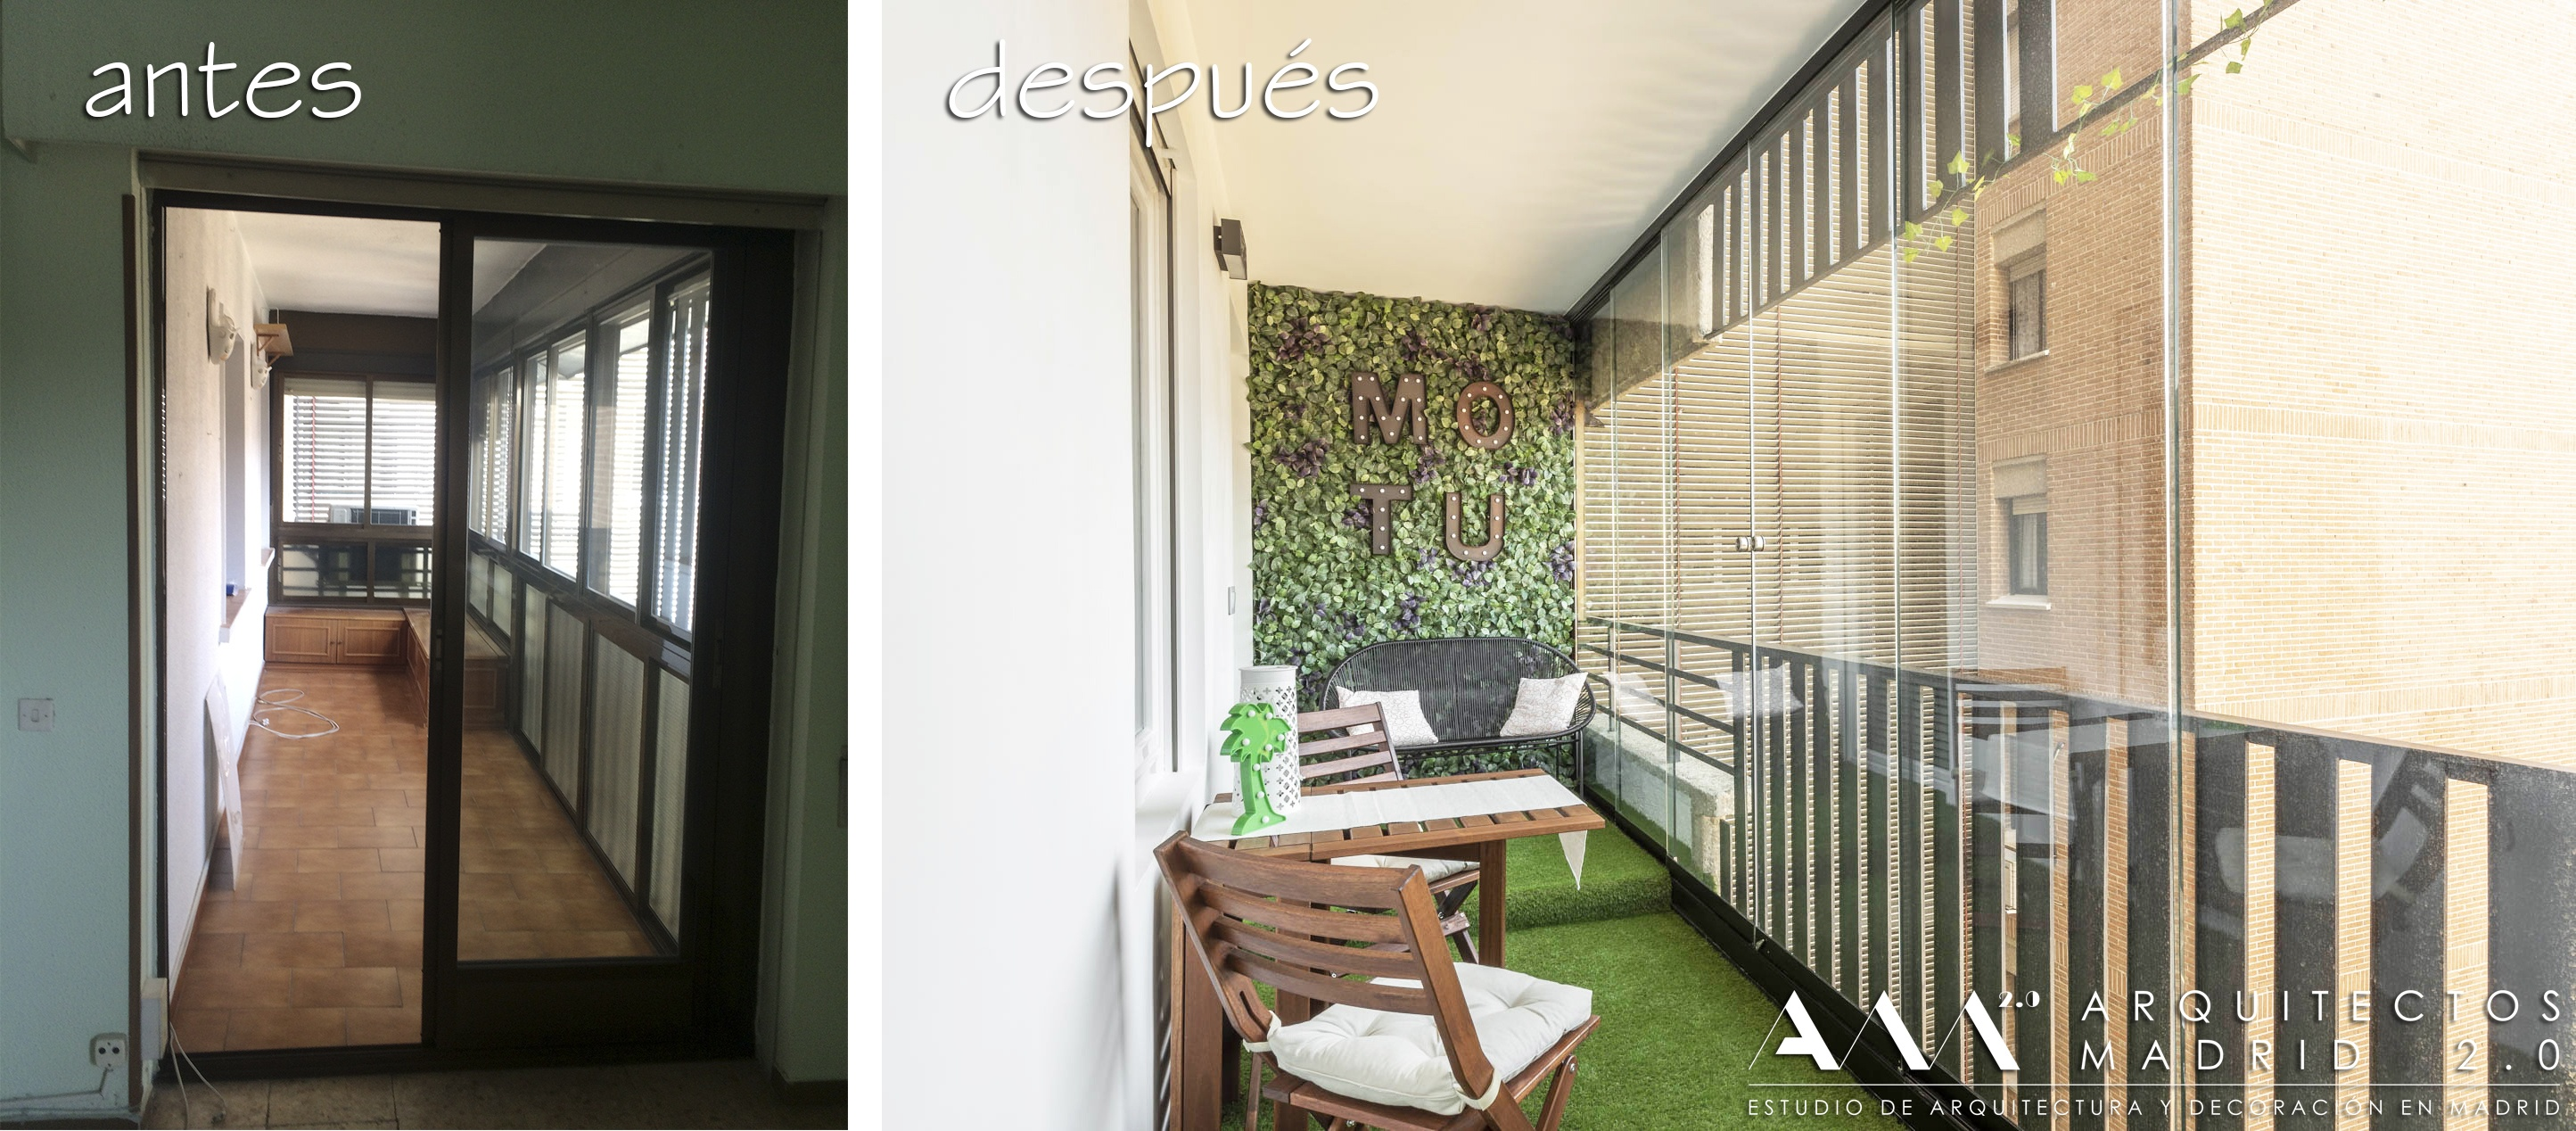 antes-después-reforma-vivienda-housing-reform-architects-before-after